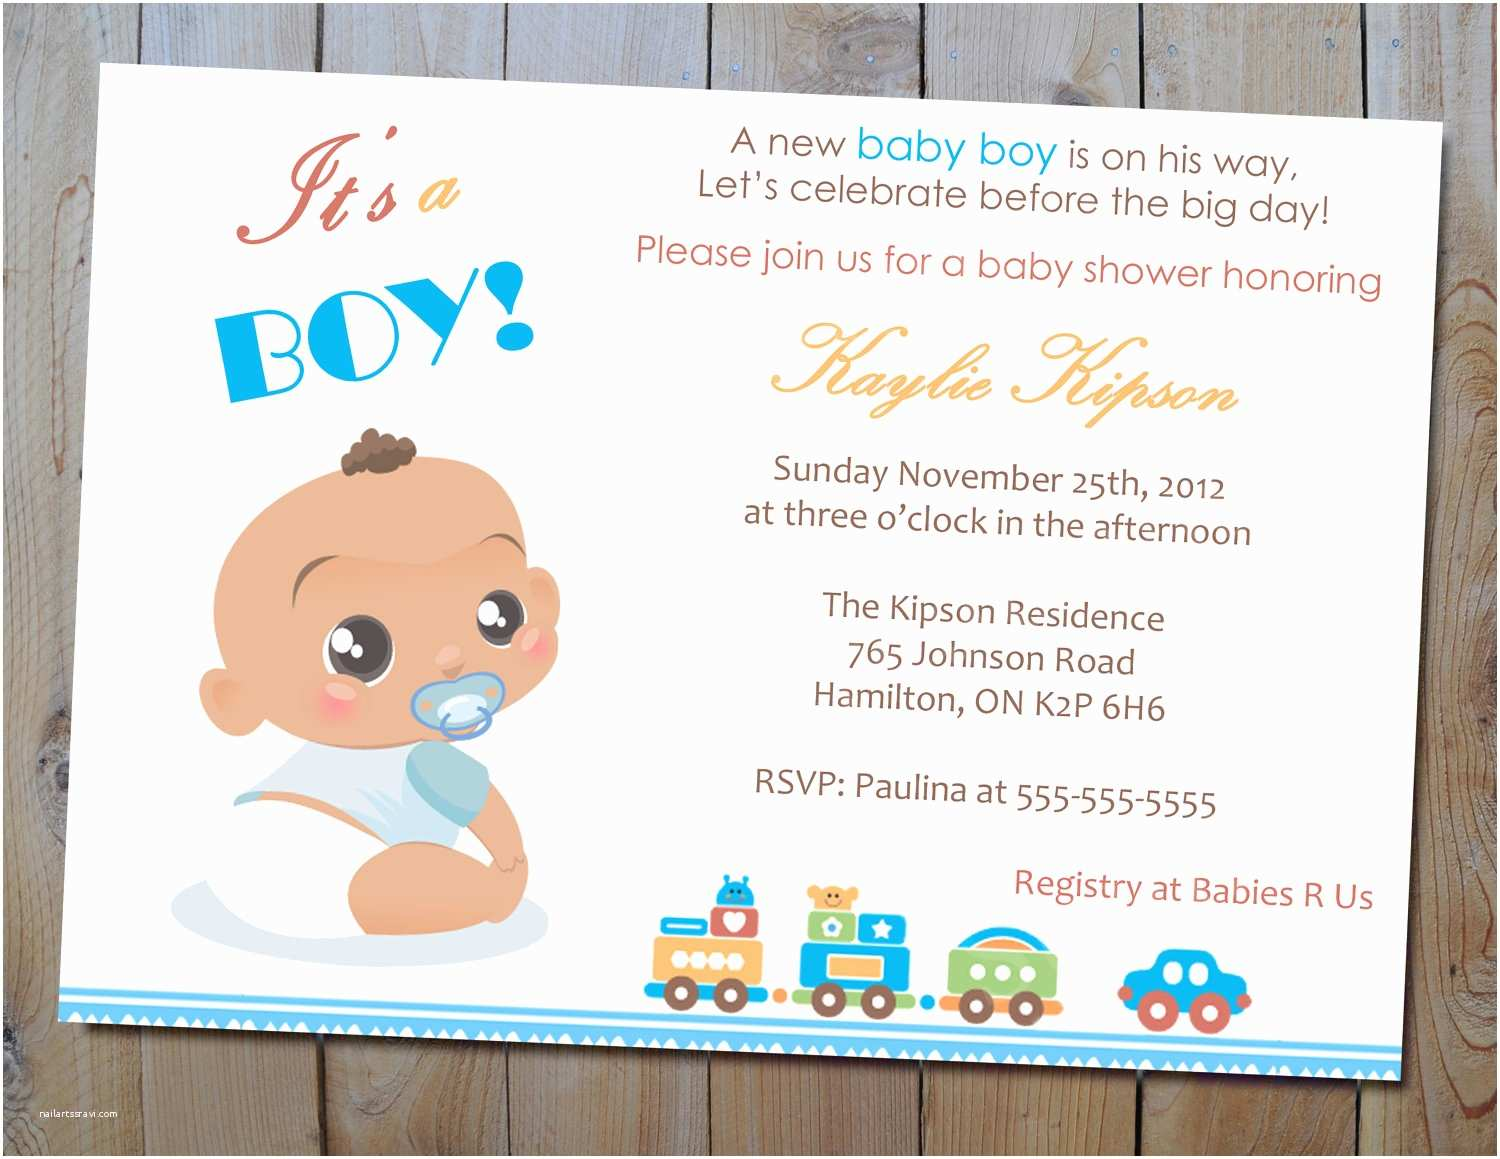 Wording for Baby Shower Invitation the Best Wording for Boy Baby Shower Invitations